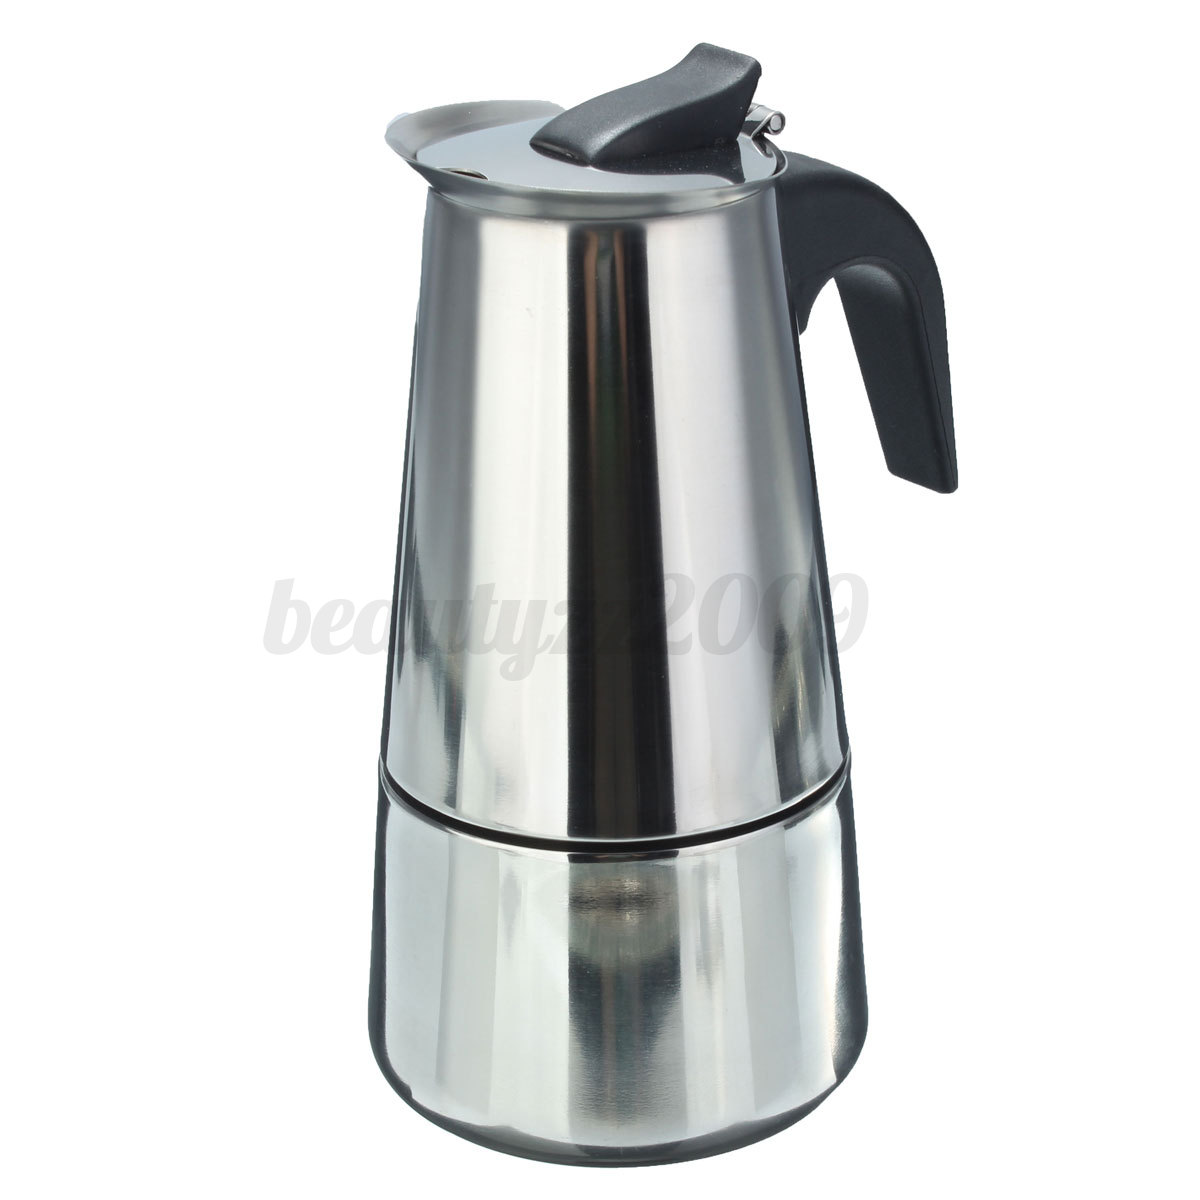 Continental Electric Coffee Maker How To Use : 100 300ml Espresso Stove TOP Coffee Maker Continental Percolator POT 2 6 Cups eBay